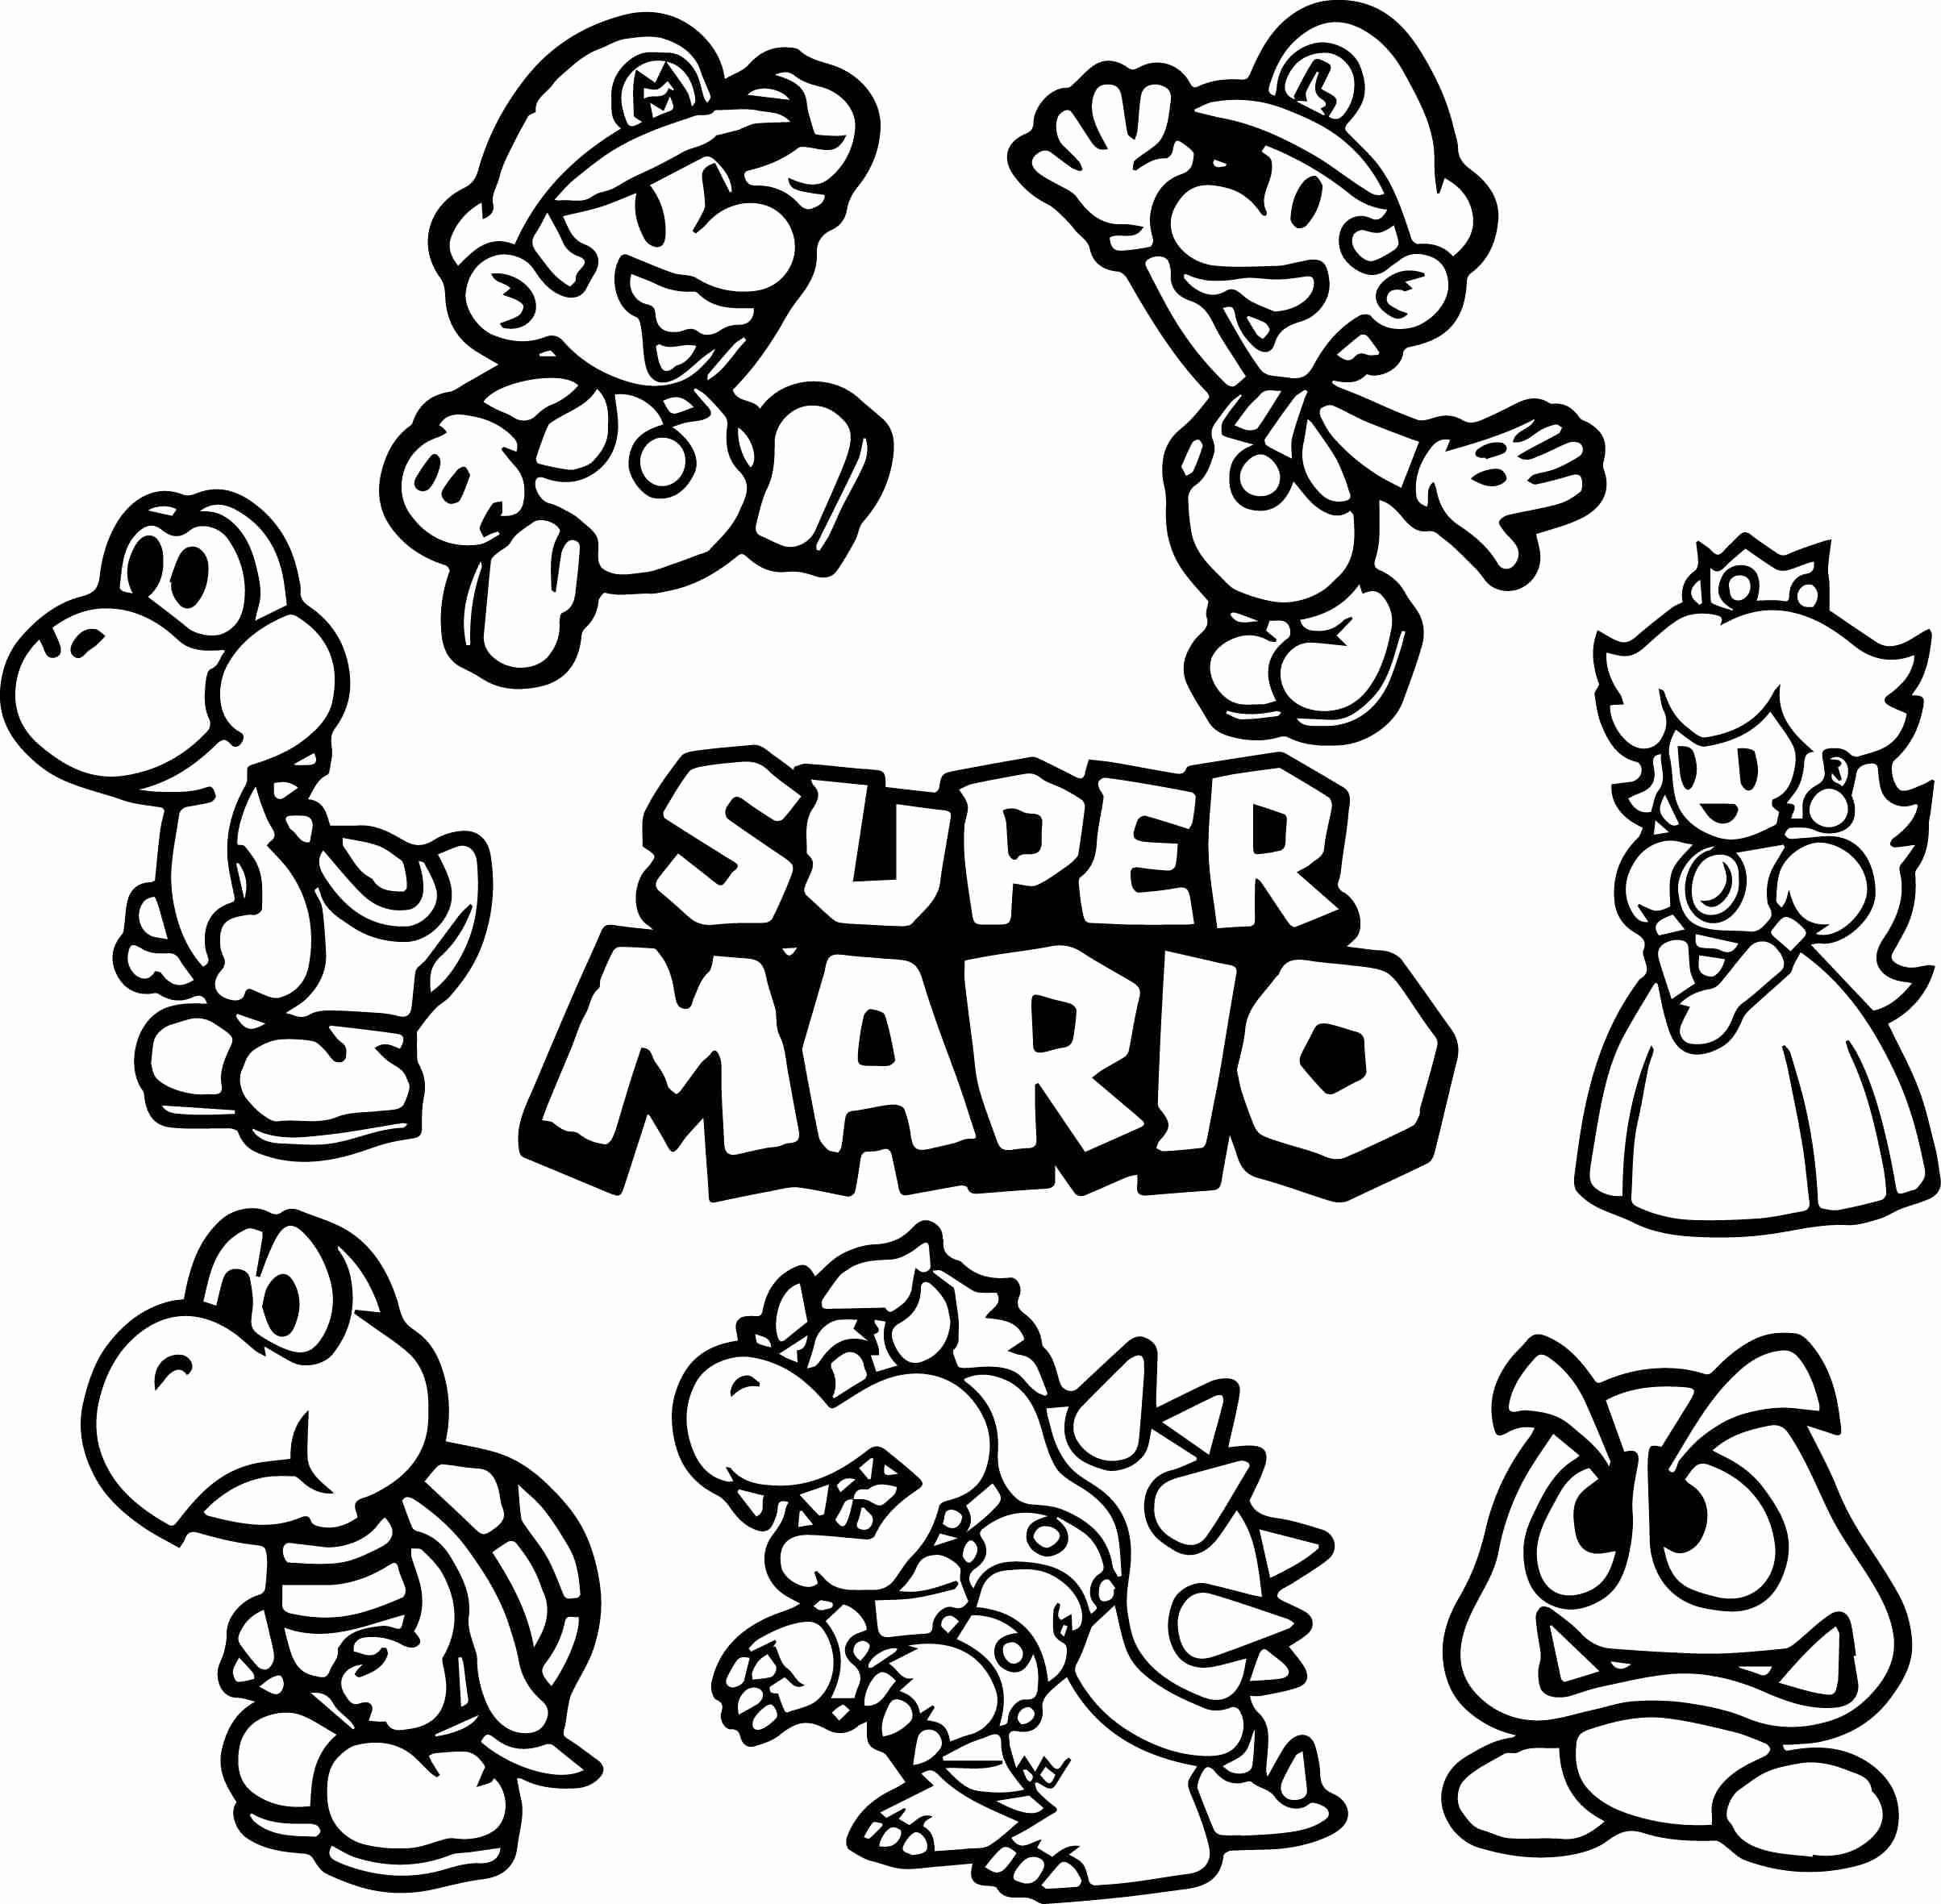 Ausmalbild Super Mario Frisch Mario Coloring Pages for Boys Download Ausmalbilder Super Mario Sammlung